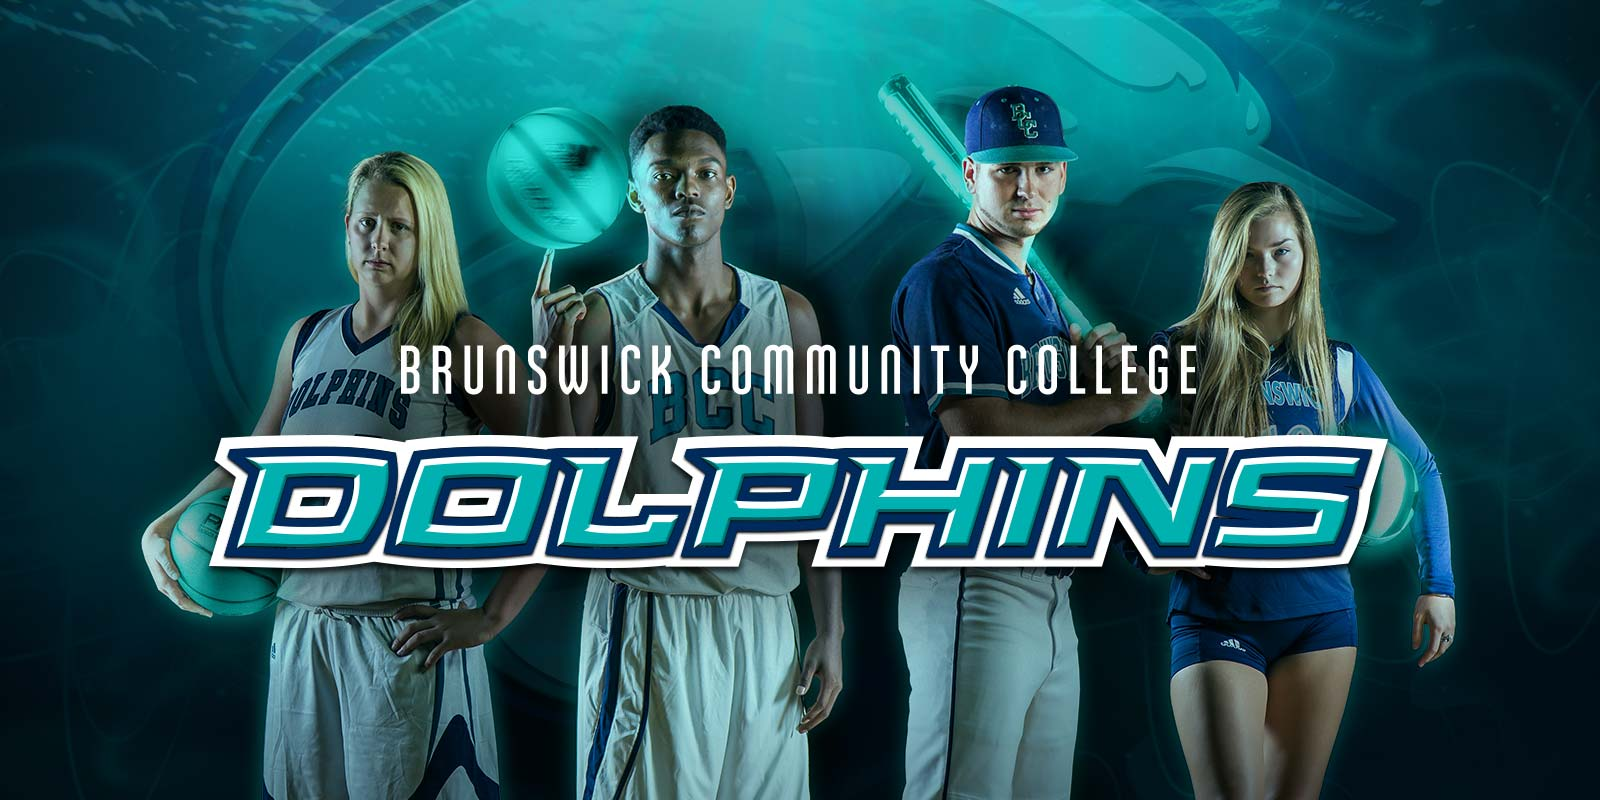 Brunswick Community College Athletics